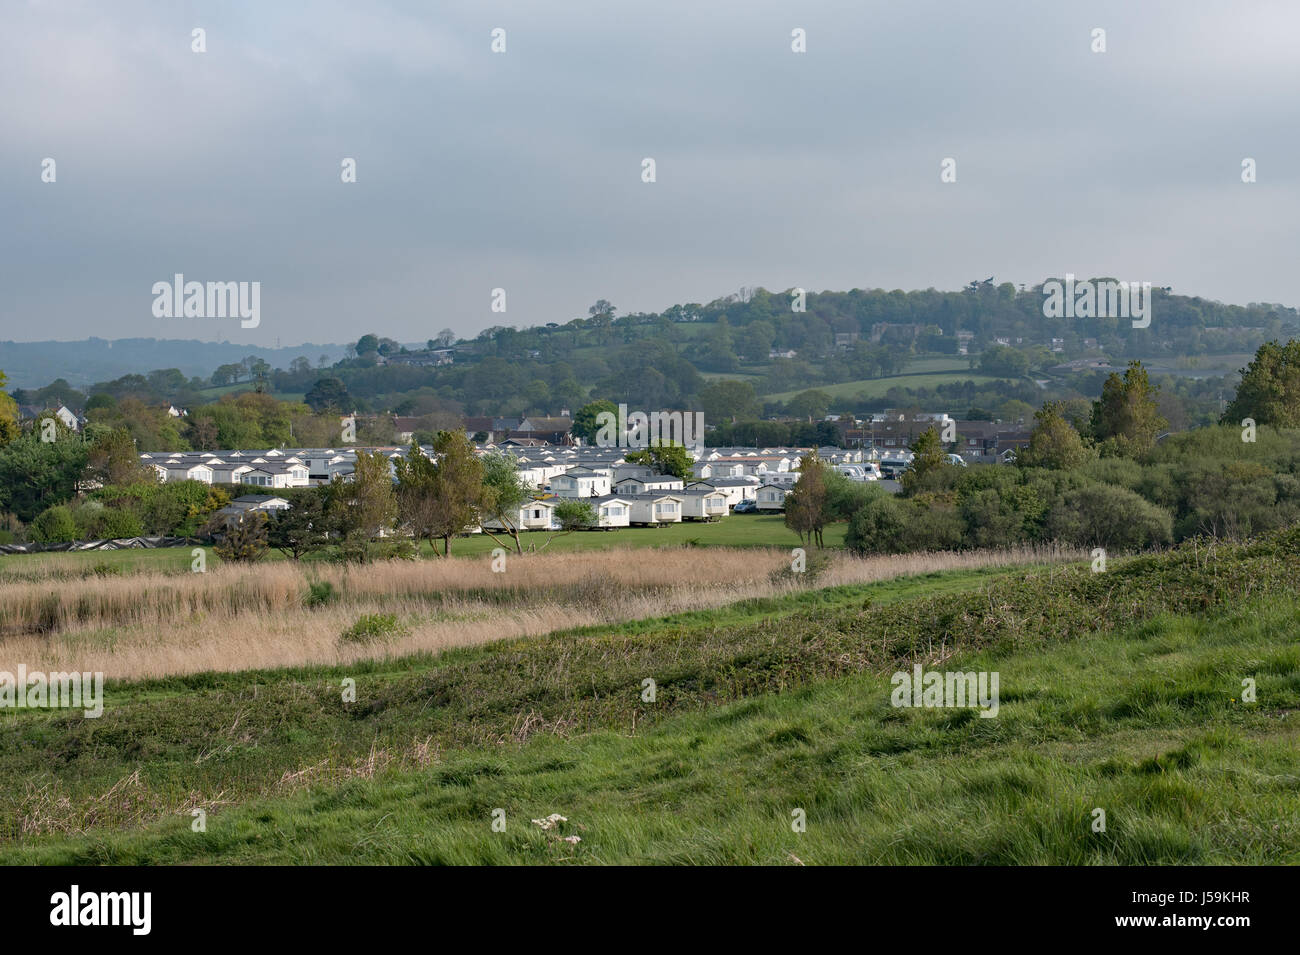 The reed beds edging the River Char at Charmouth, Dorset. - Stock Image